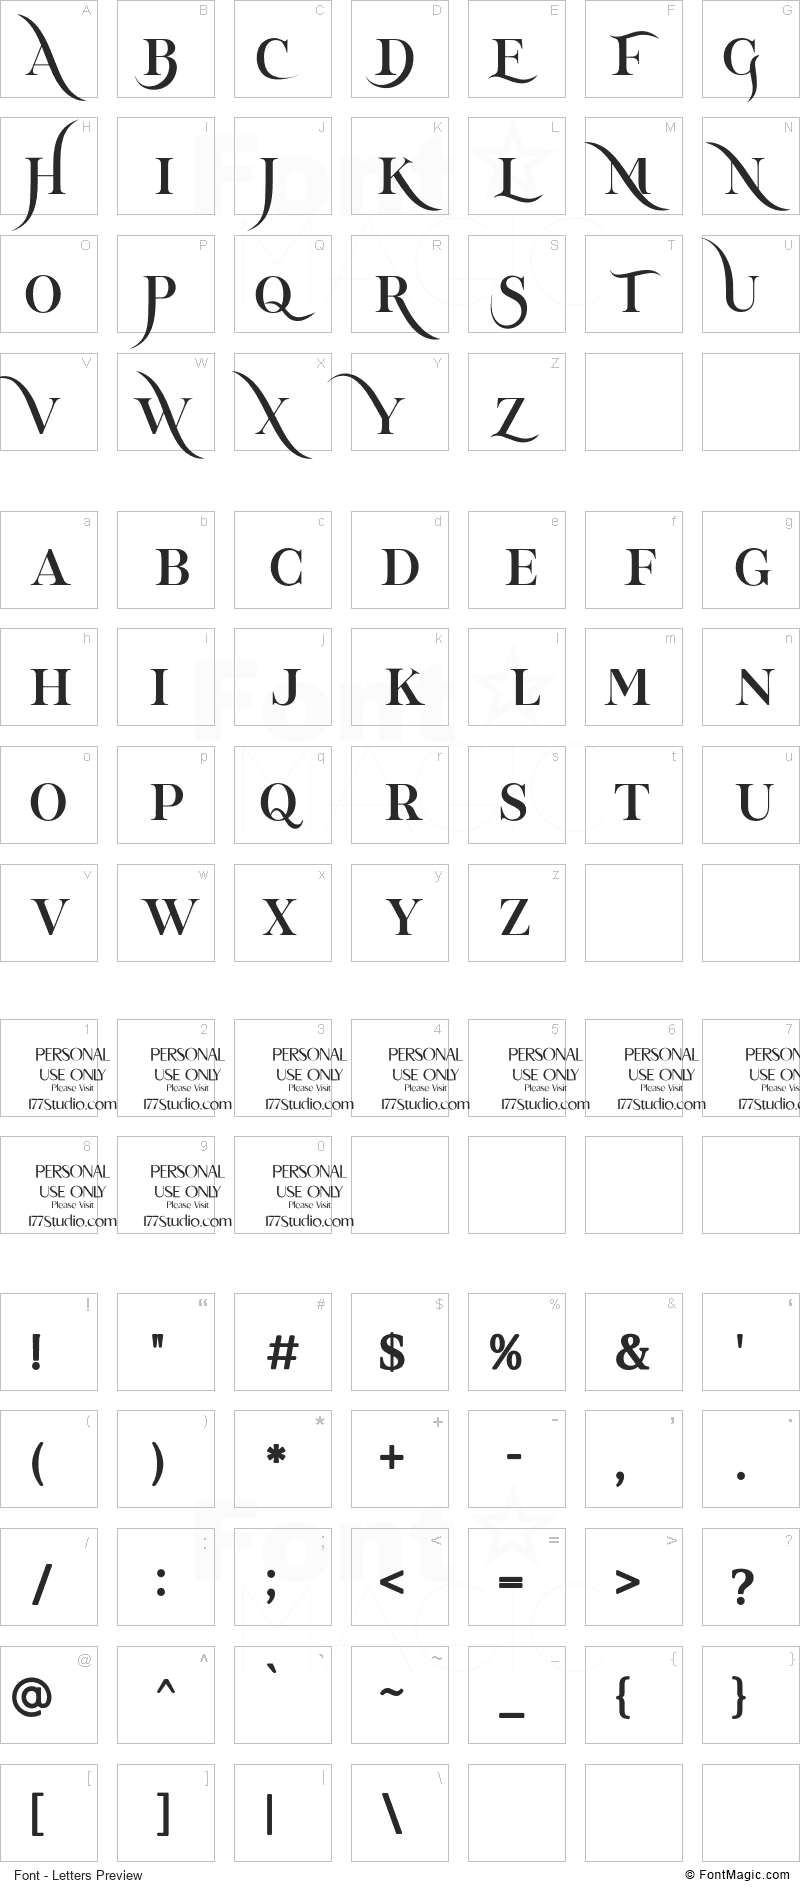 Tornado Font - All Latters Preview Chart